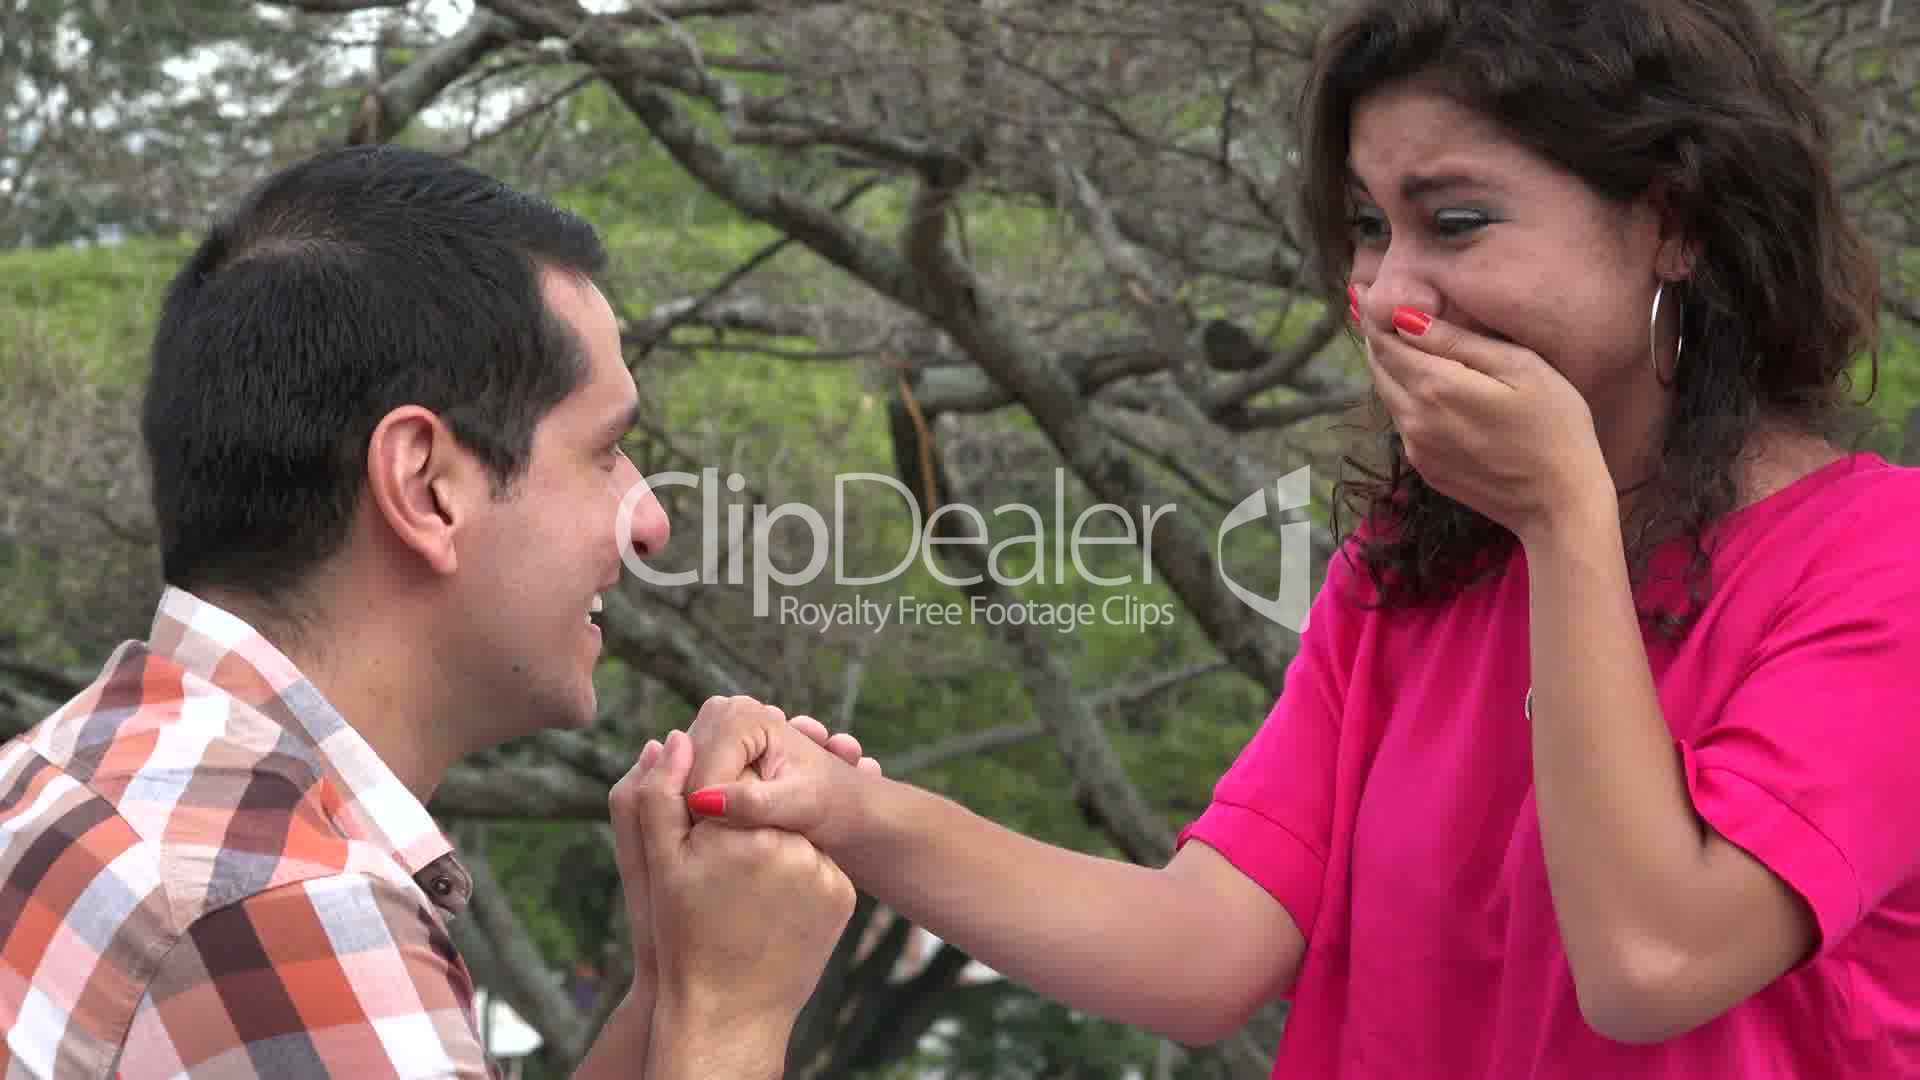 Woman Accepts Marriage Proposal: Royalty-free video and stock footage